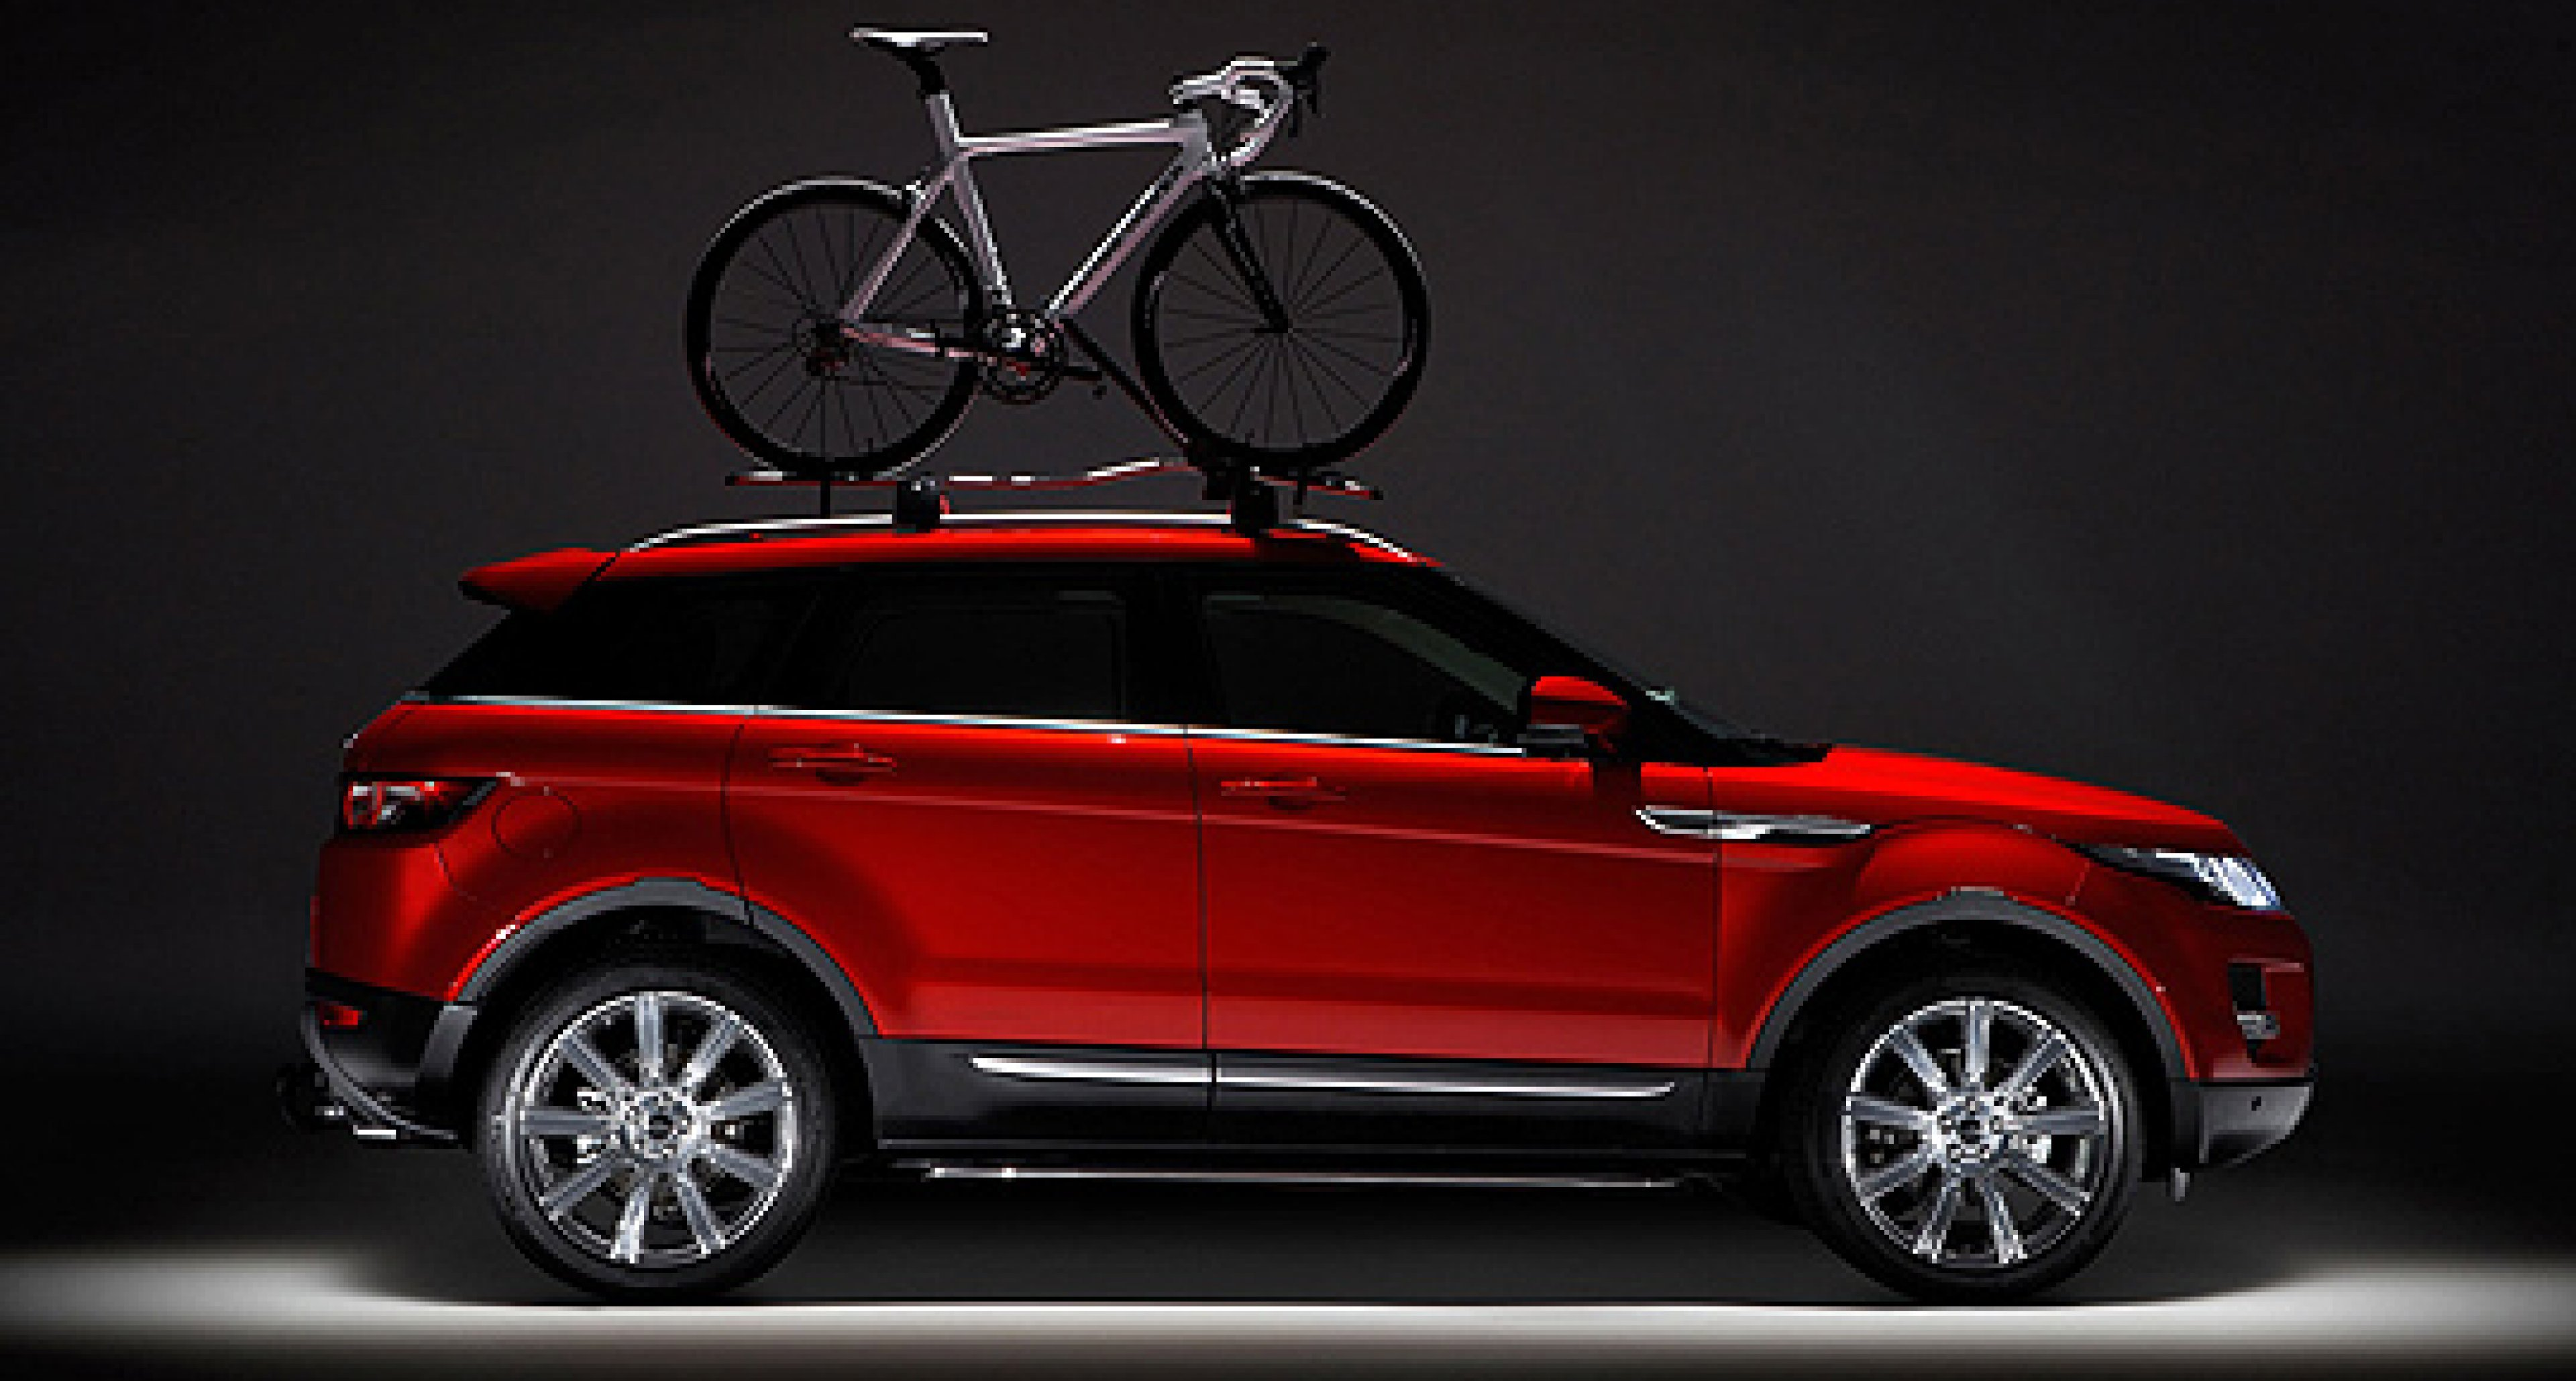 Evoque on Two Wheels